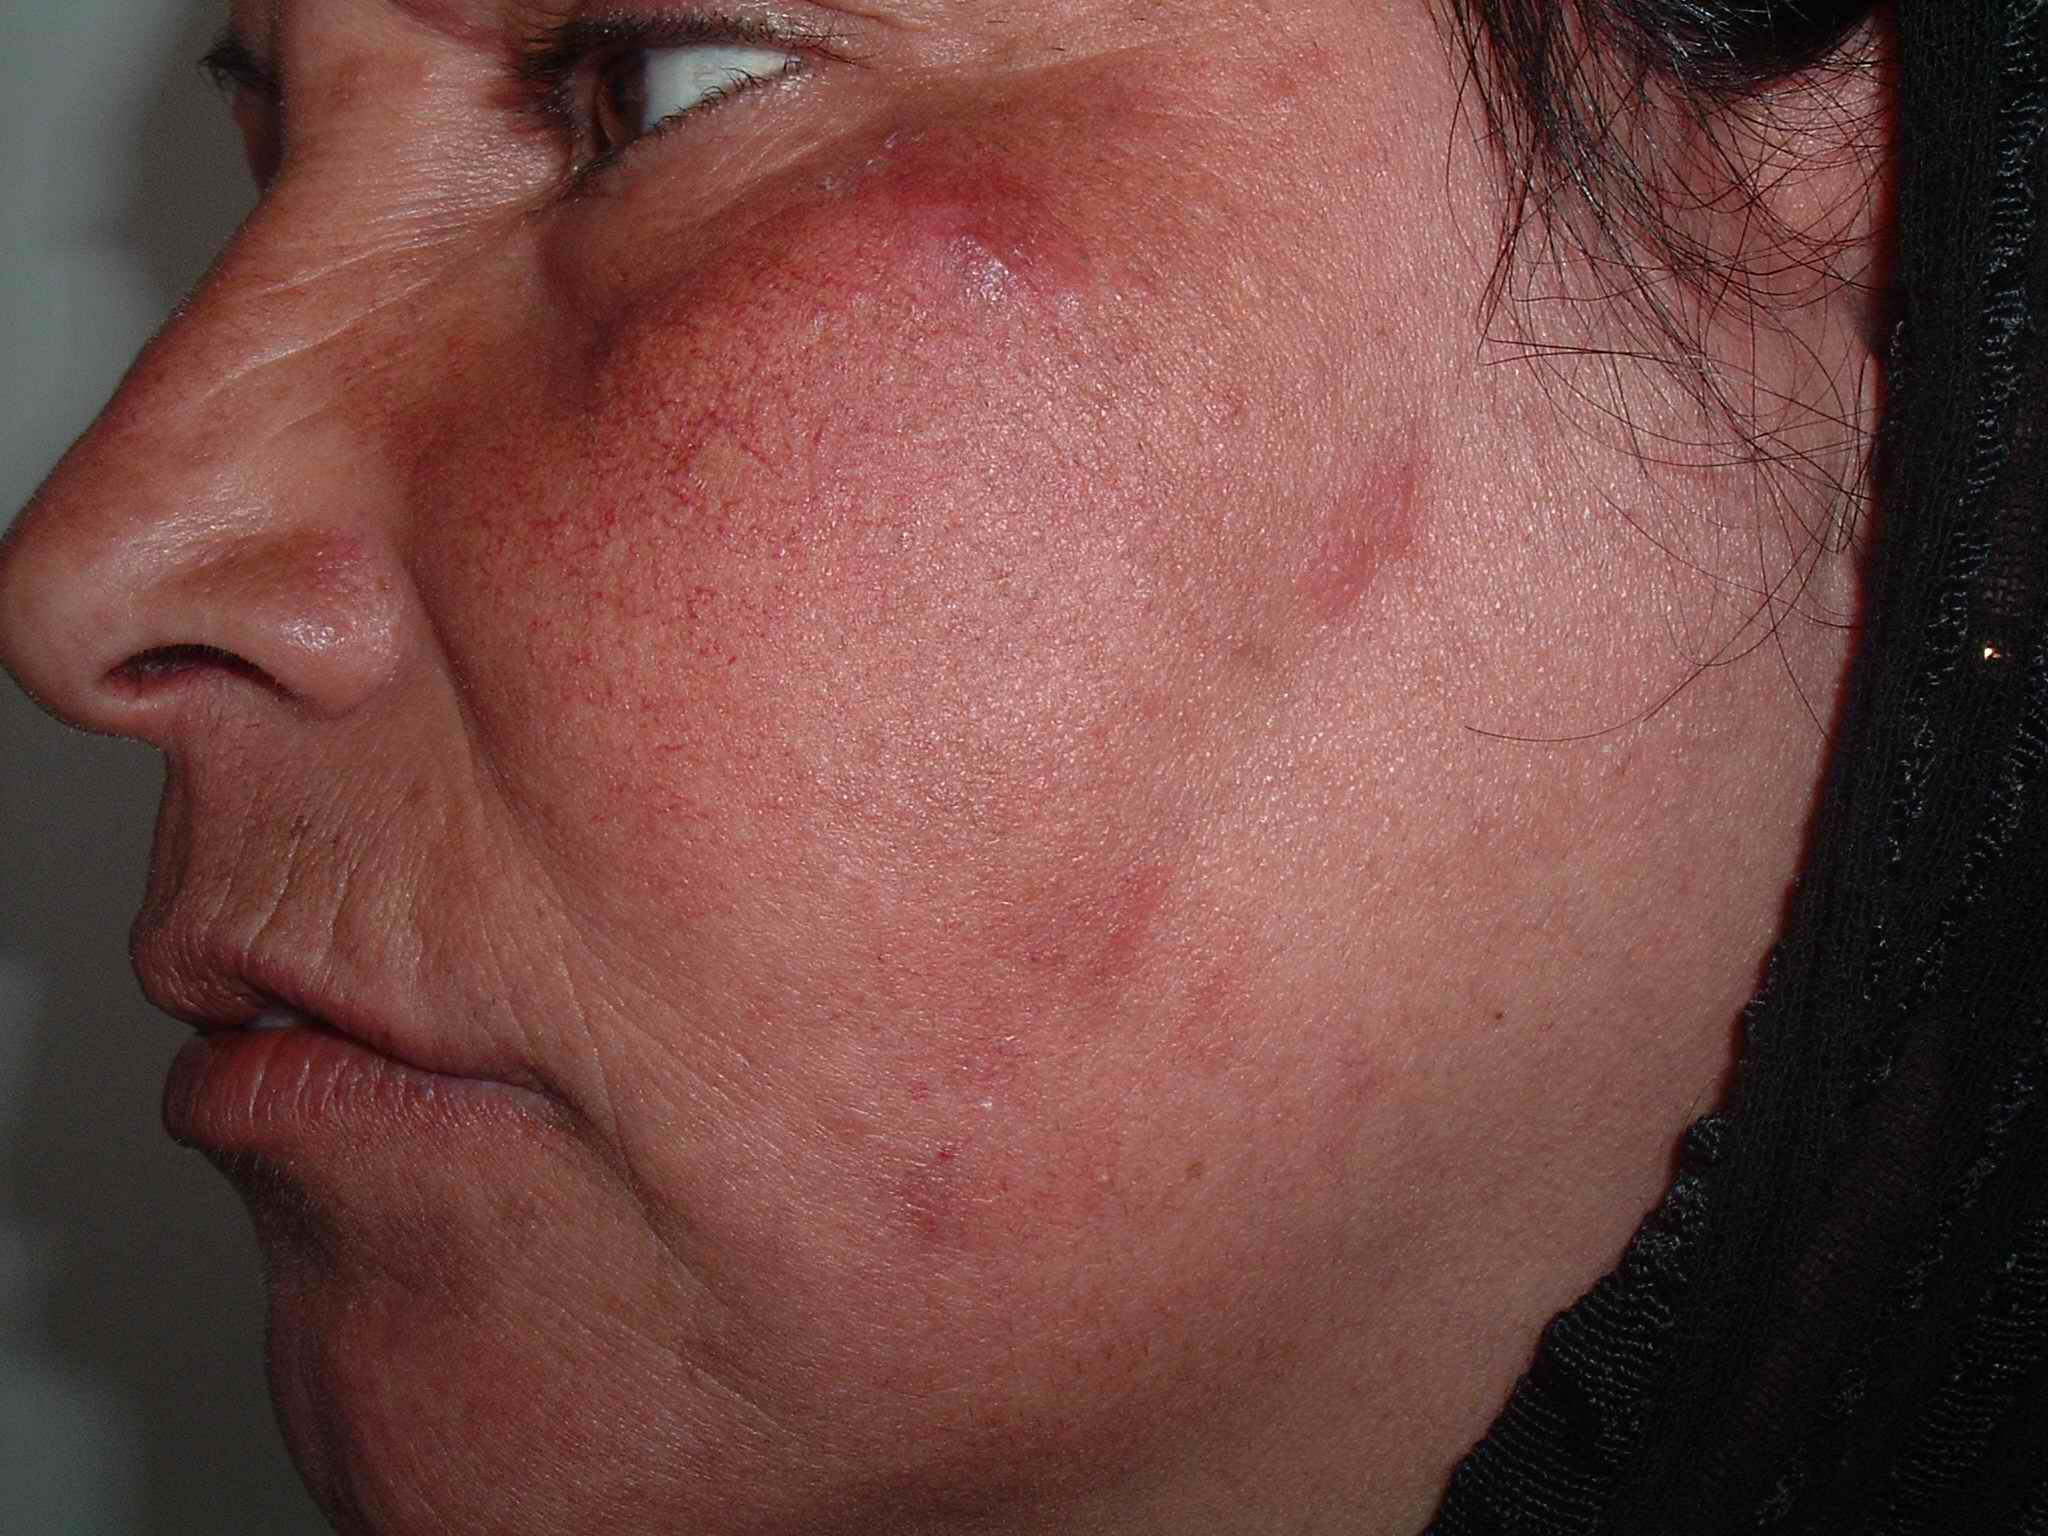 Red scaly rash - American Academy of Dermatology - aad.org